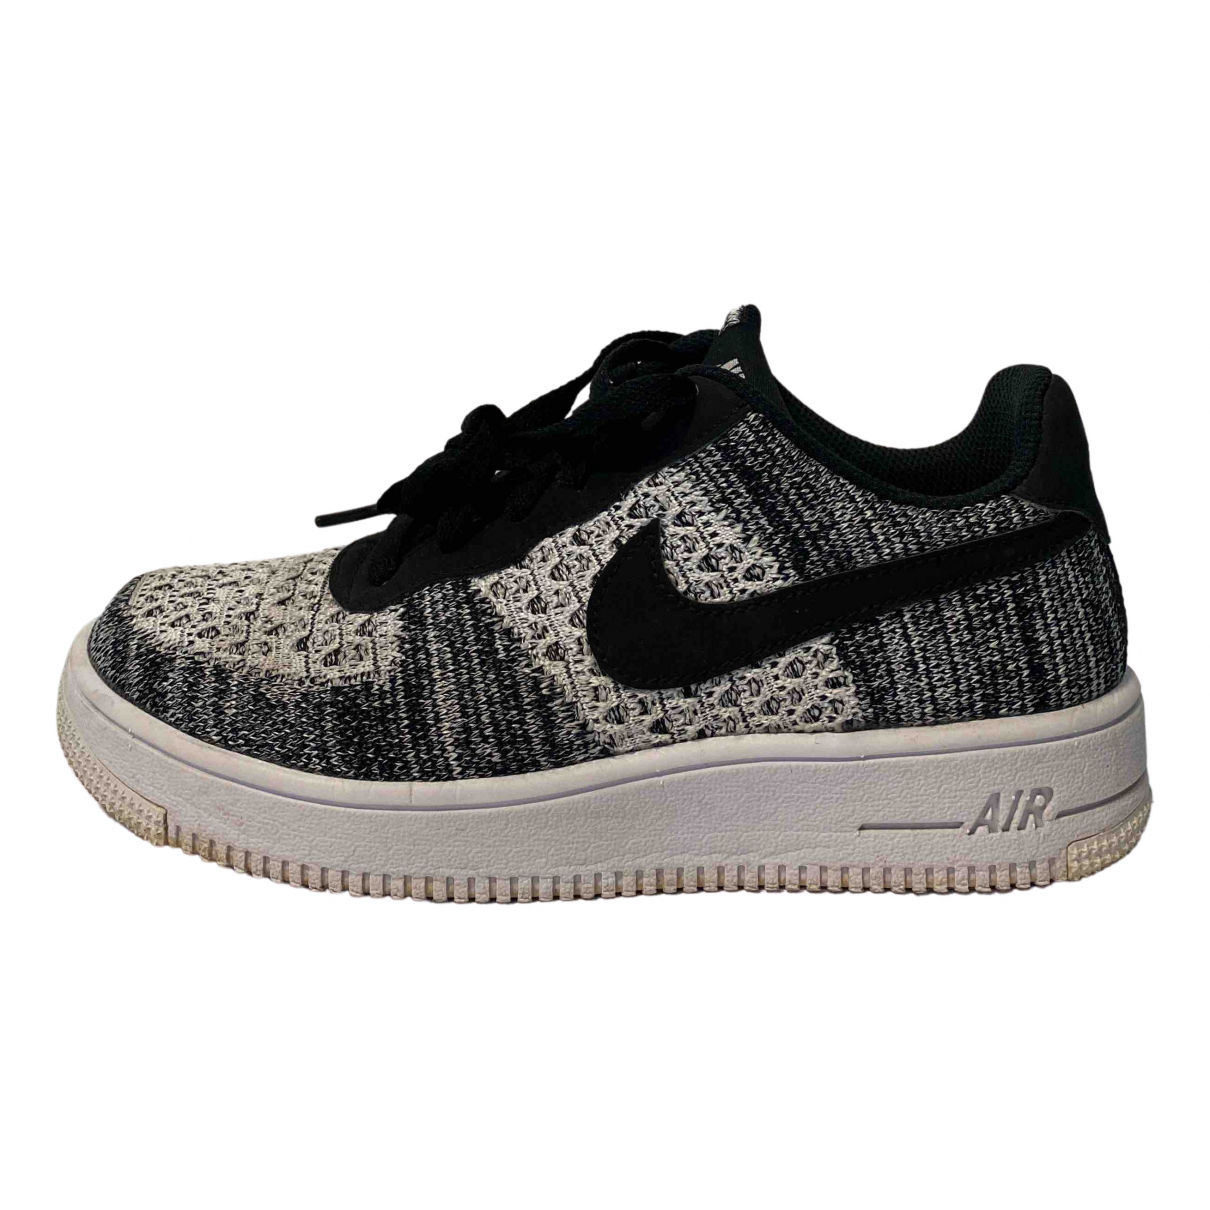 Nike Air Force 1 Grey Cloth Trainers for Women 37.5 EU